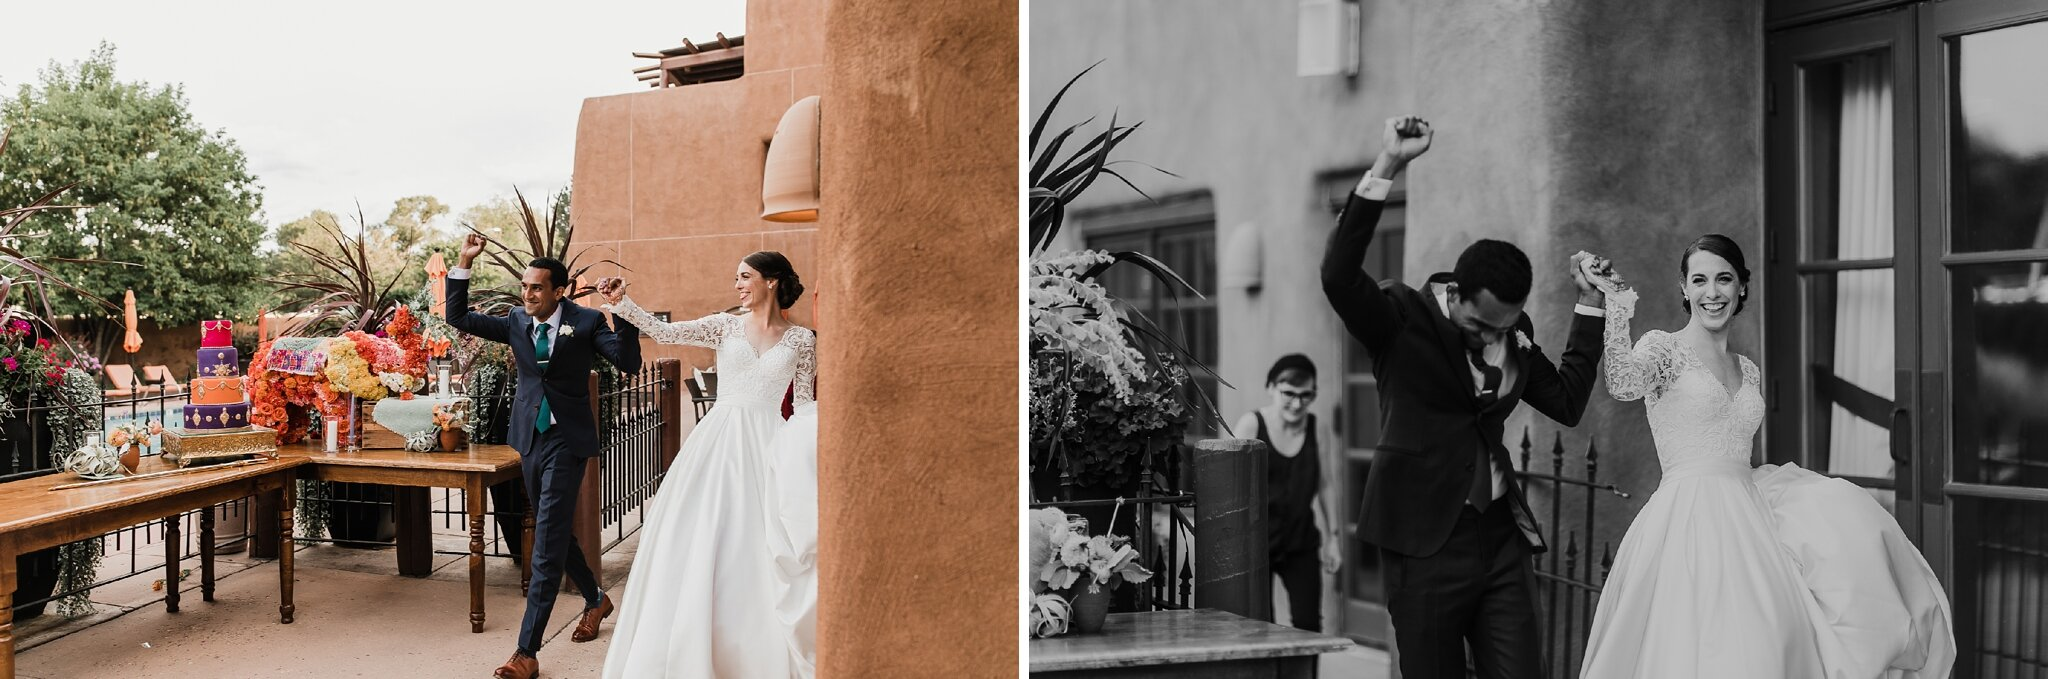 Alicia+lucia+photography+-+albuquerque+wedding+photographer+-+santa+fe+wedding+photography+-+new+mexico+wedding+photographer+-+new+mexico+wedding+-+hindu+wedding+-+catholic+wedding+-+multicultural+wedding+-+santa+fe+wedding_0118.jpg